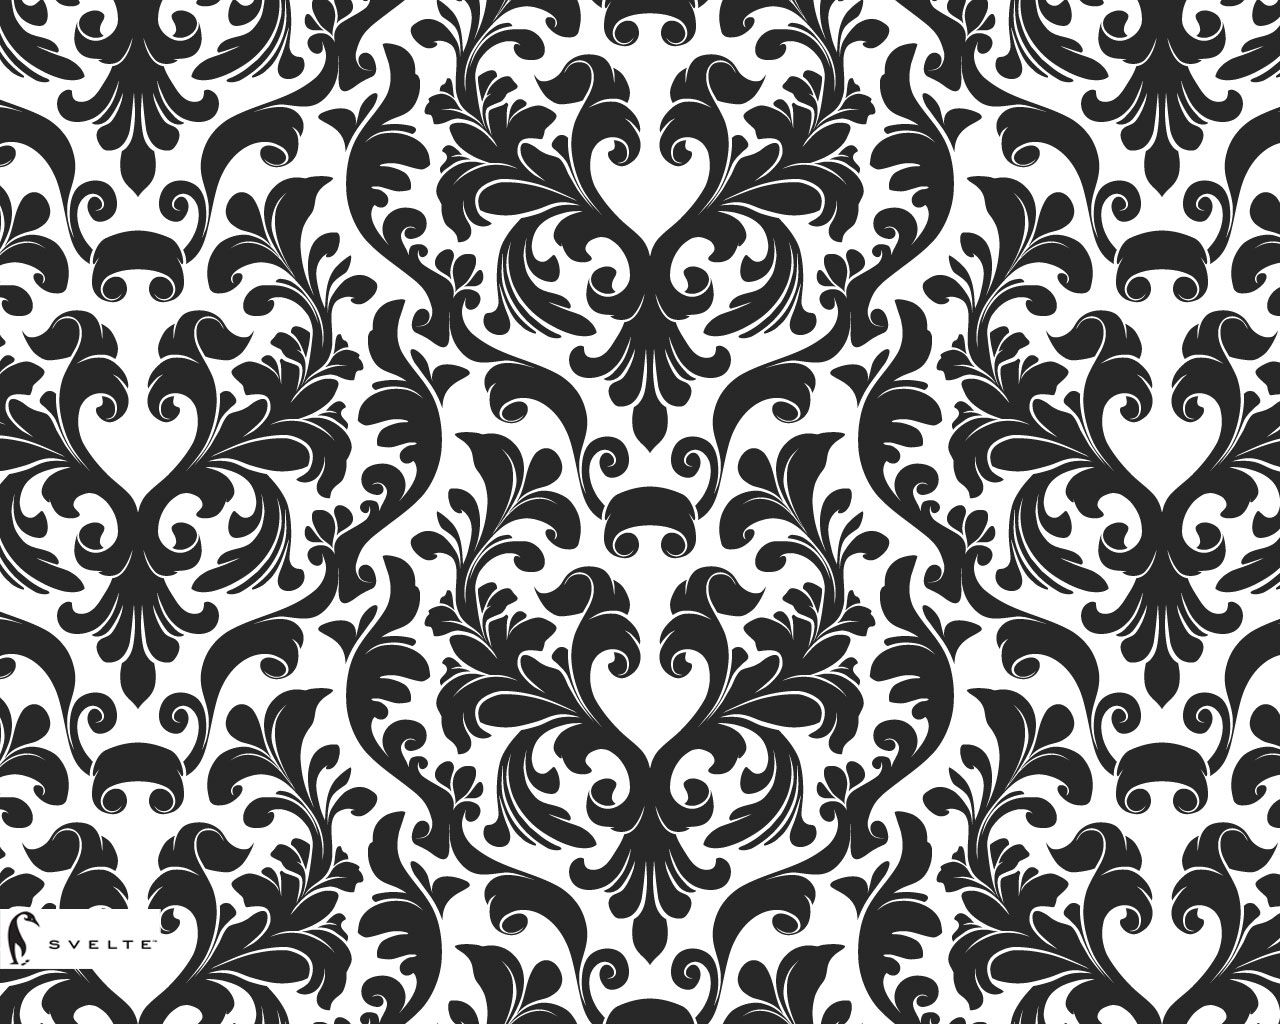 Black White Damask Wallpaper 1110 HD Wallpapers Res